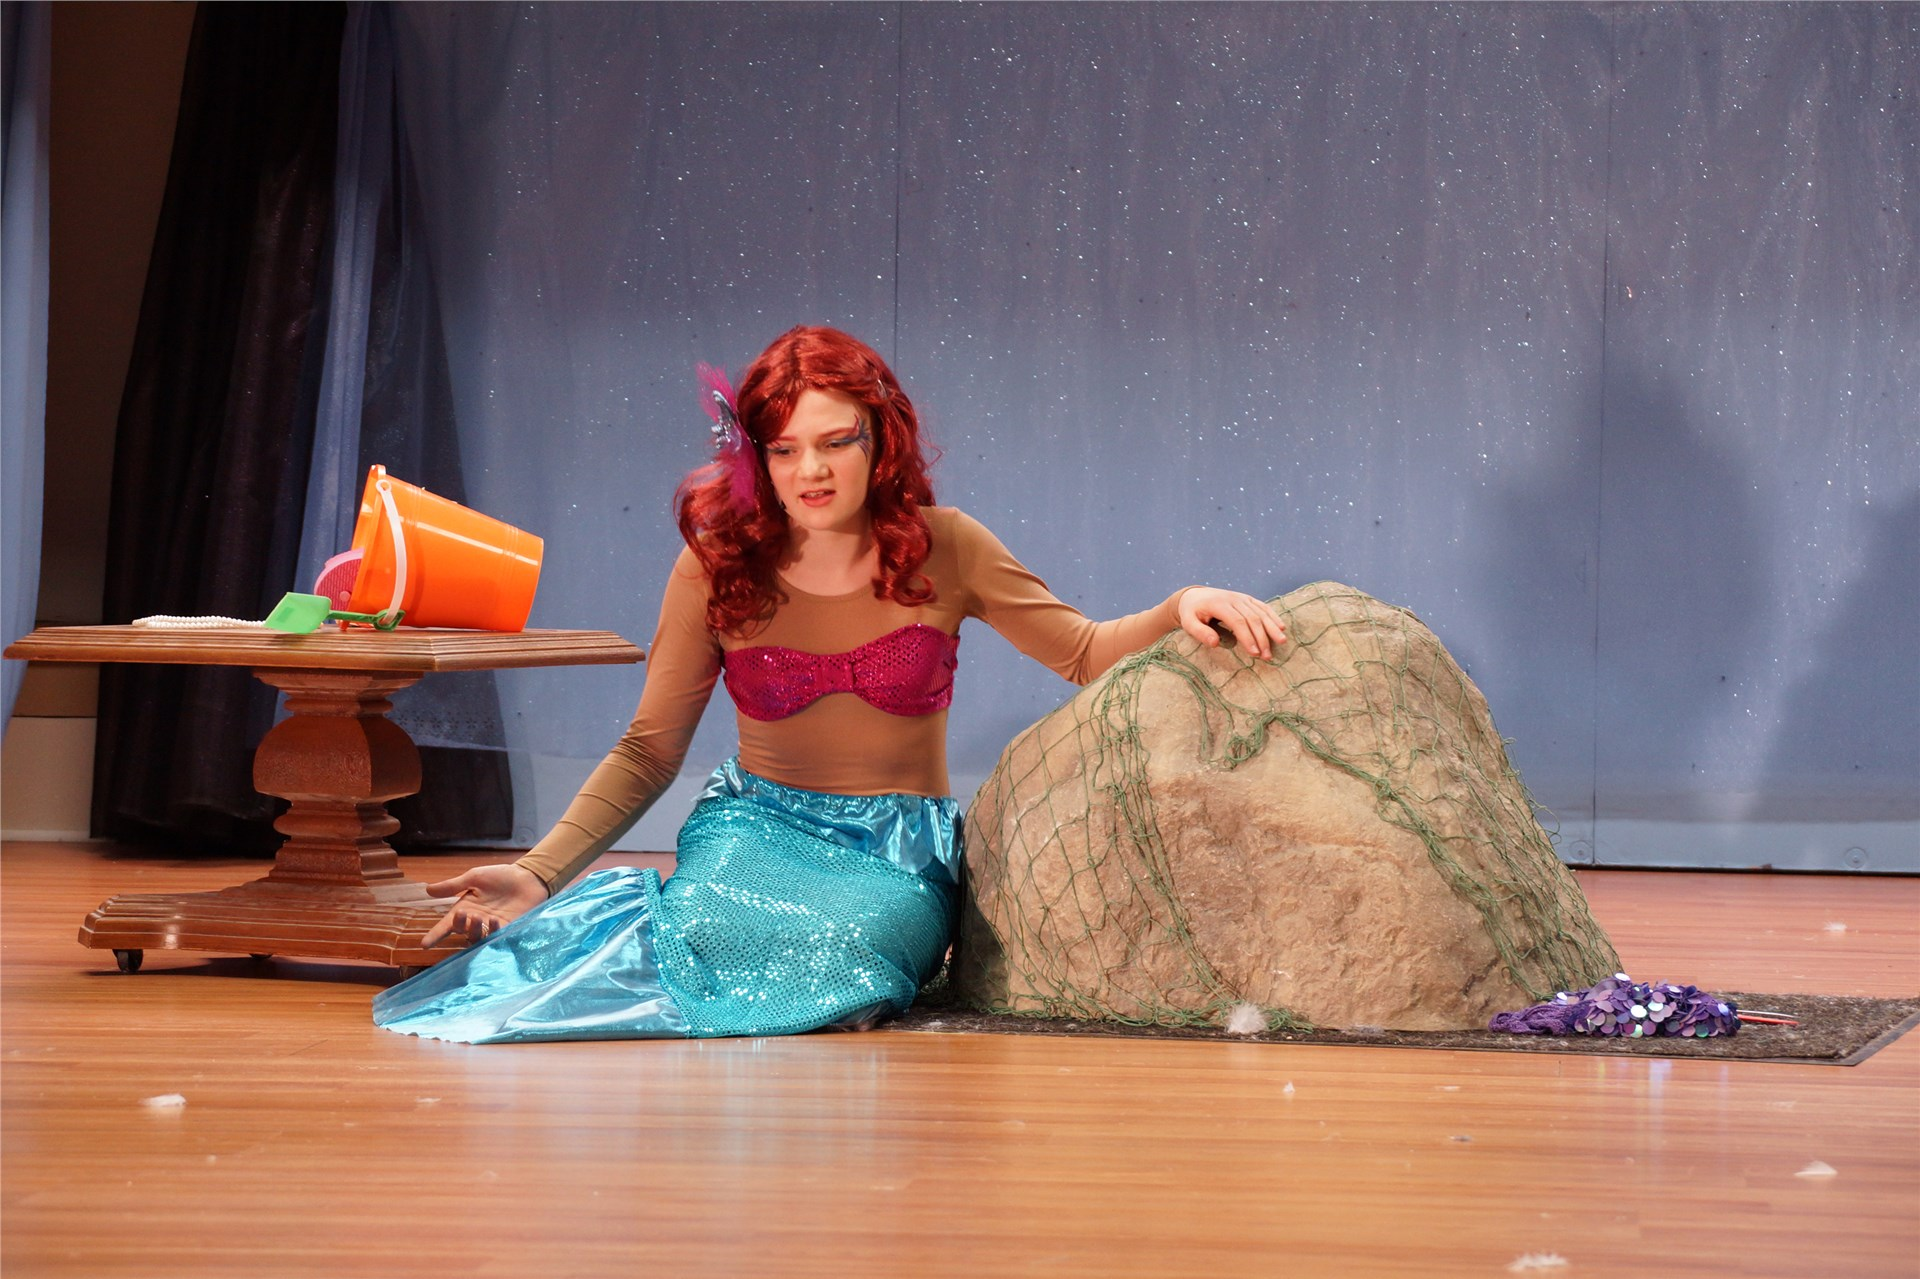 Little Mermaid play